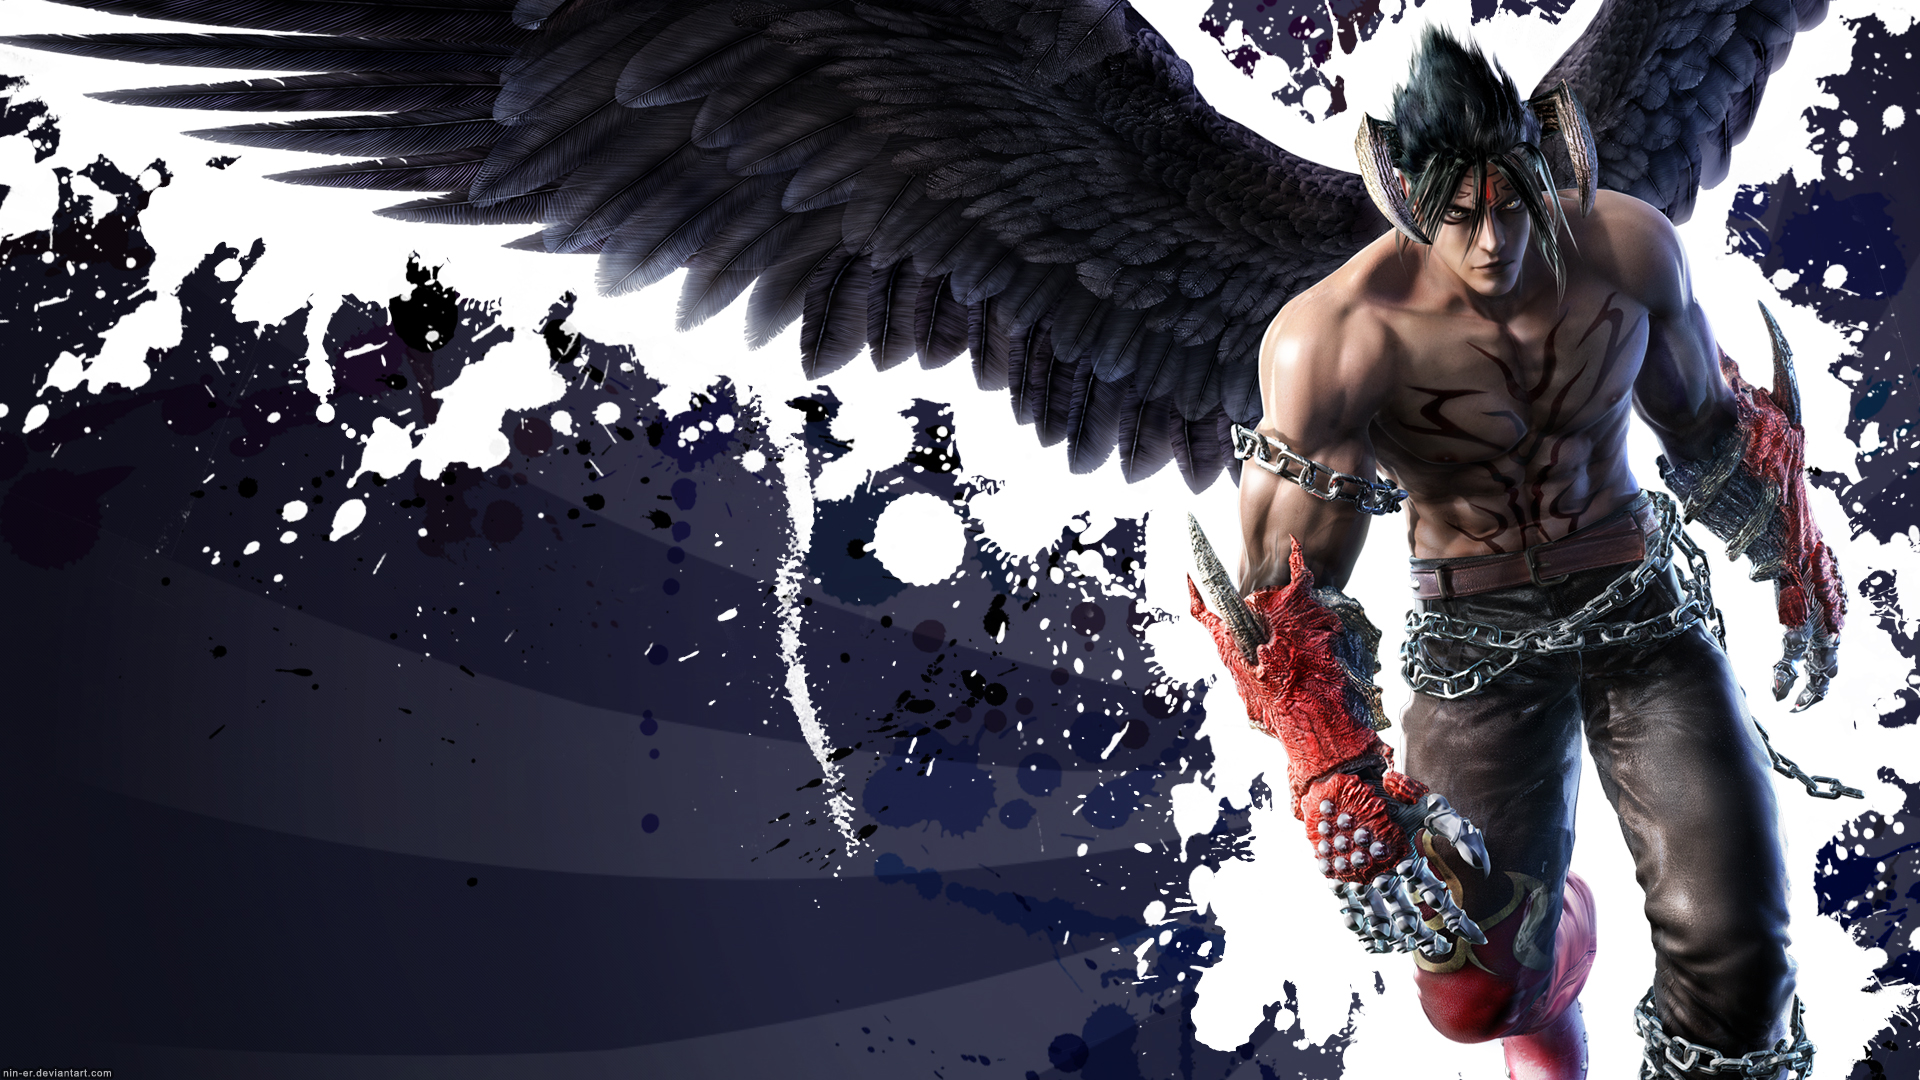 Tekken 7 Wallpaper Free Downloads HD